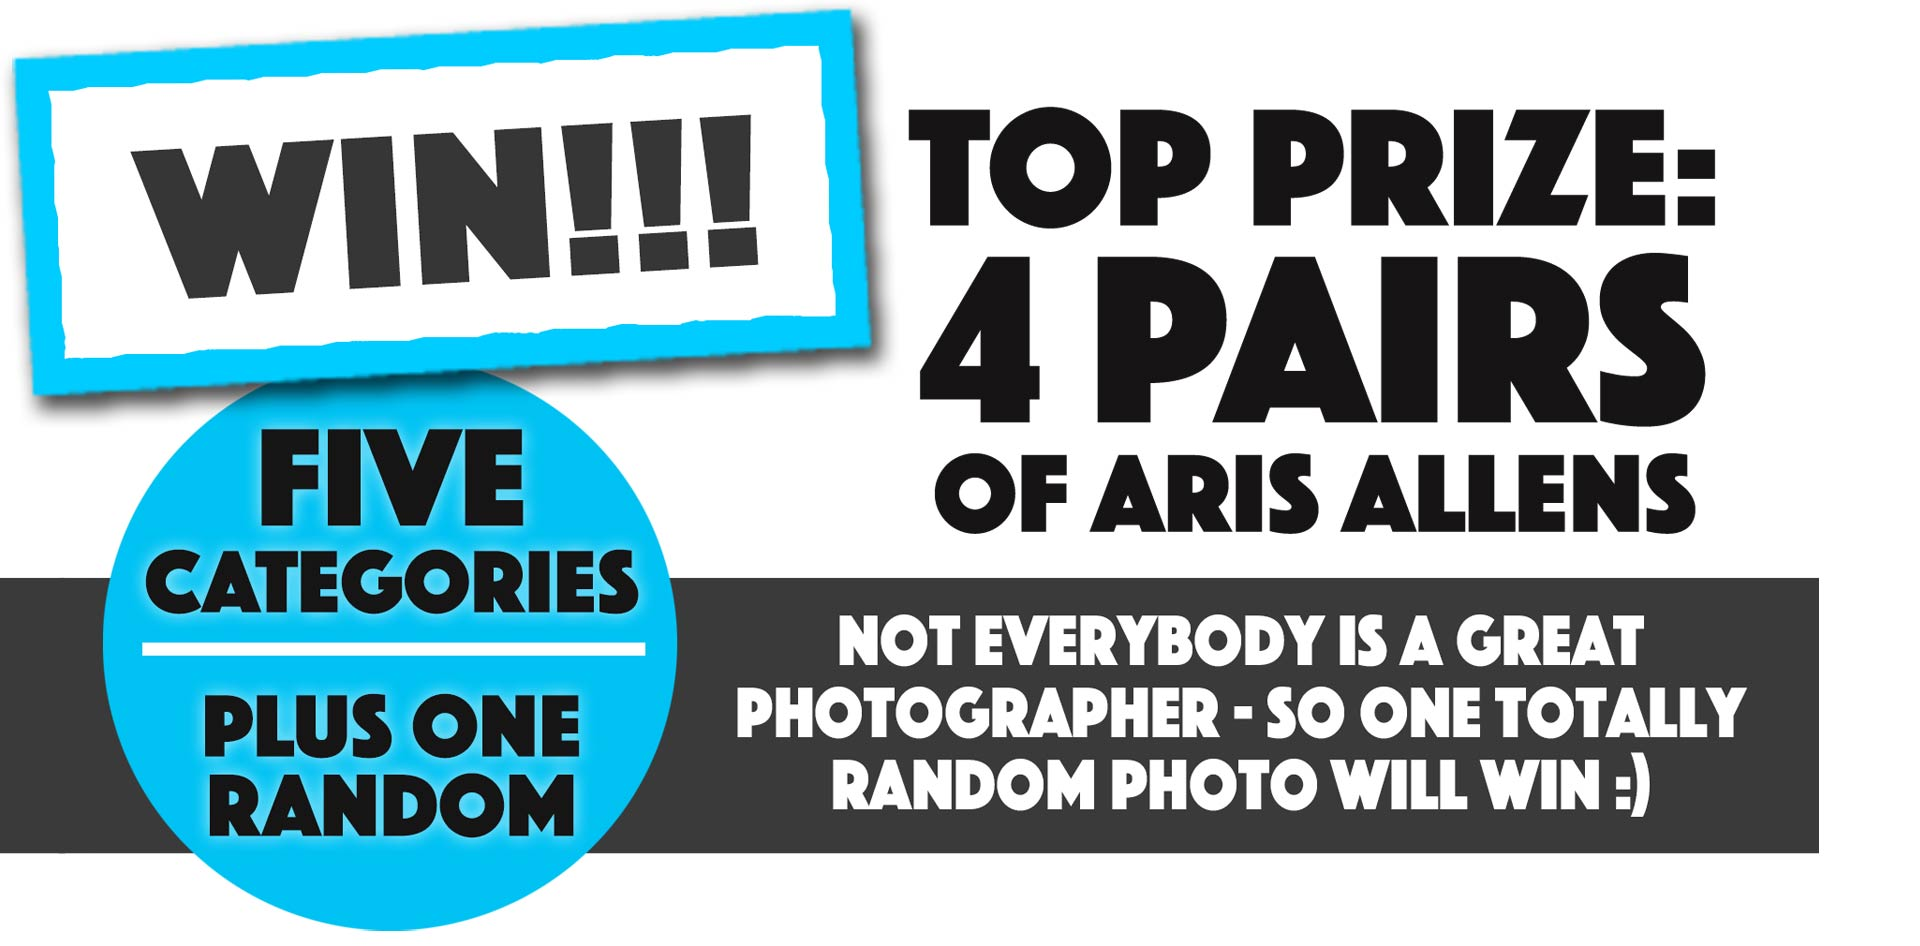 Aris Allen Photo Contest Win